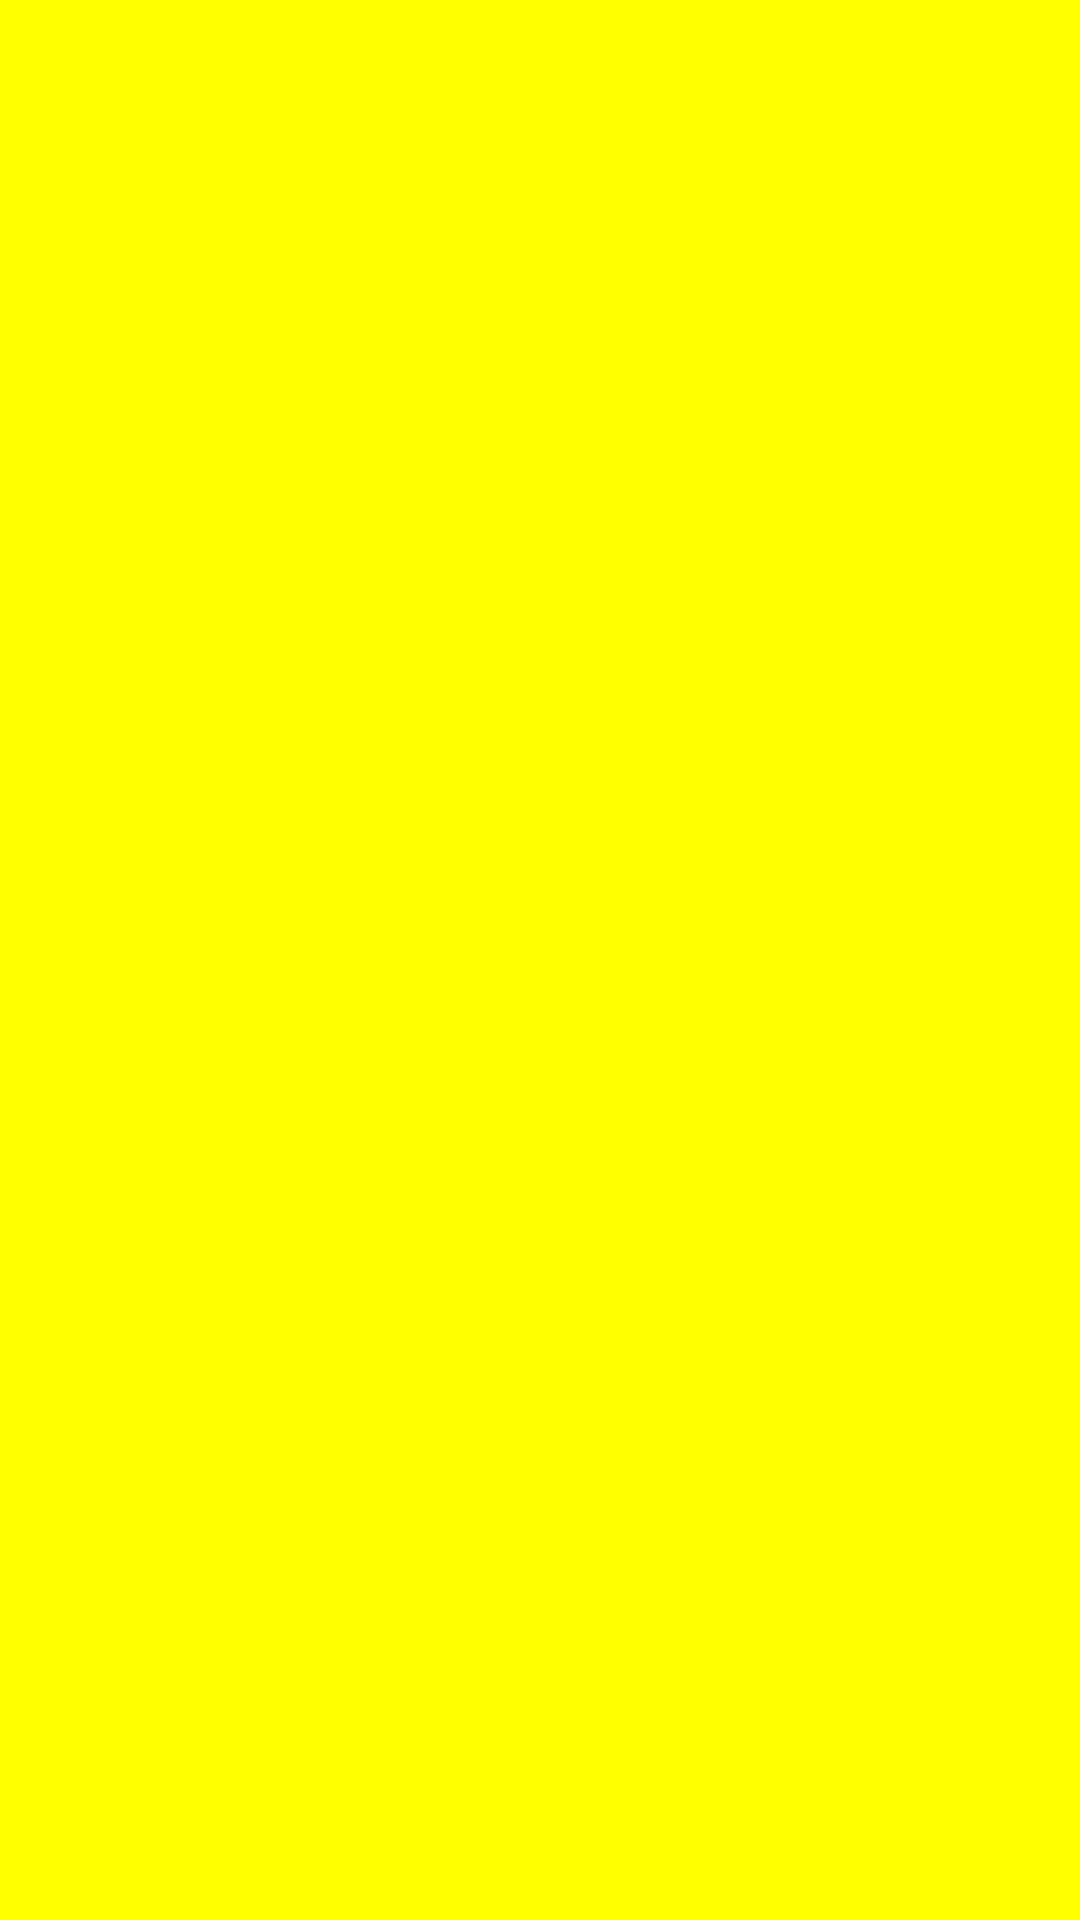 1080x1920 Yellow Solid Color Background